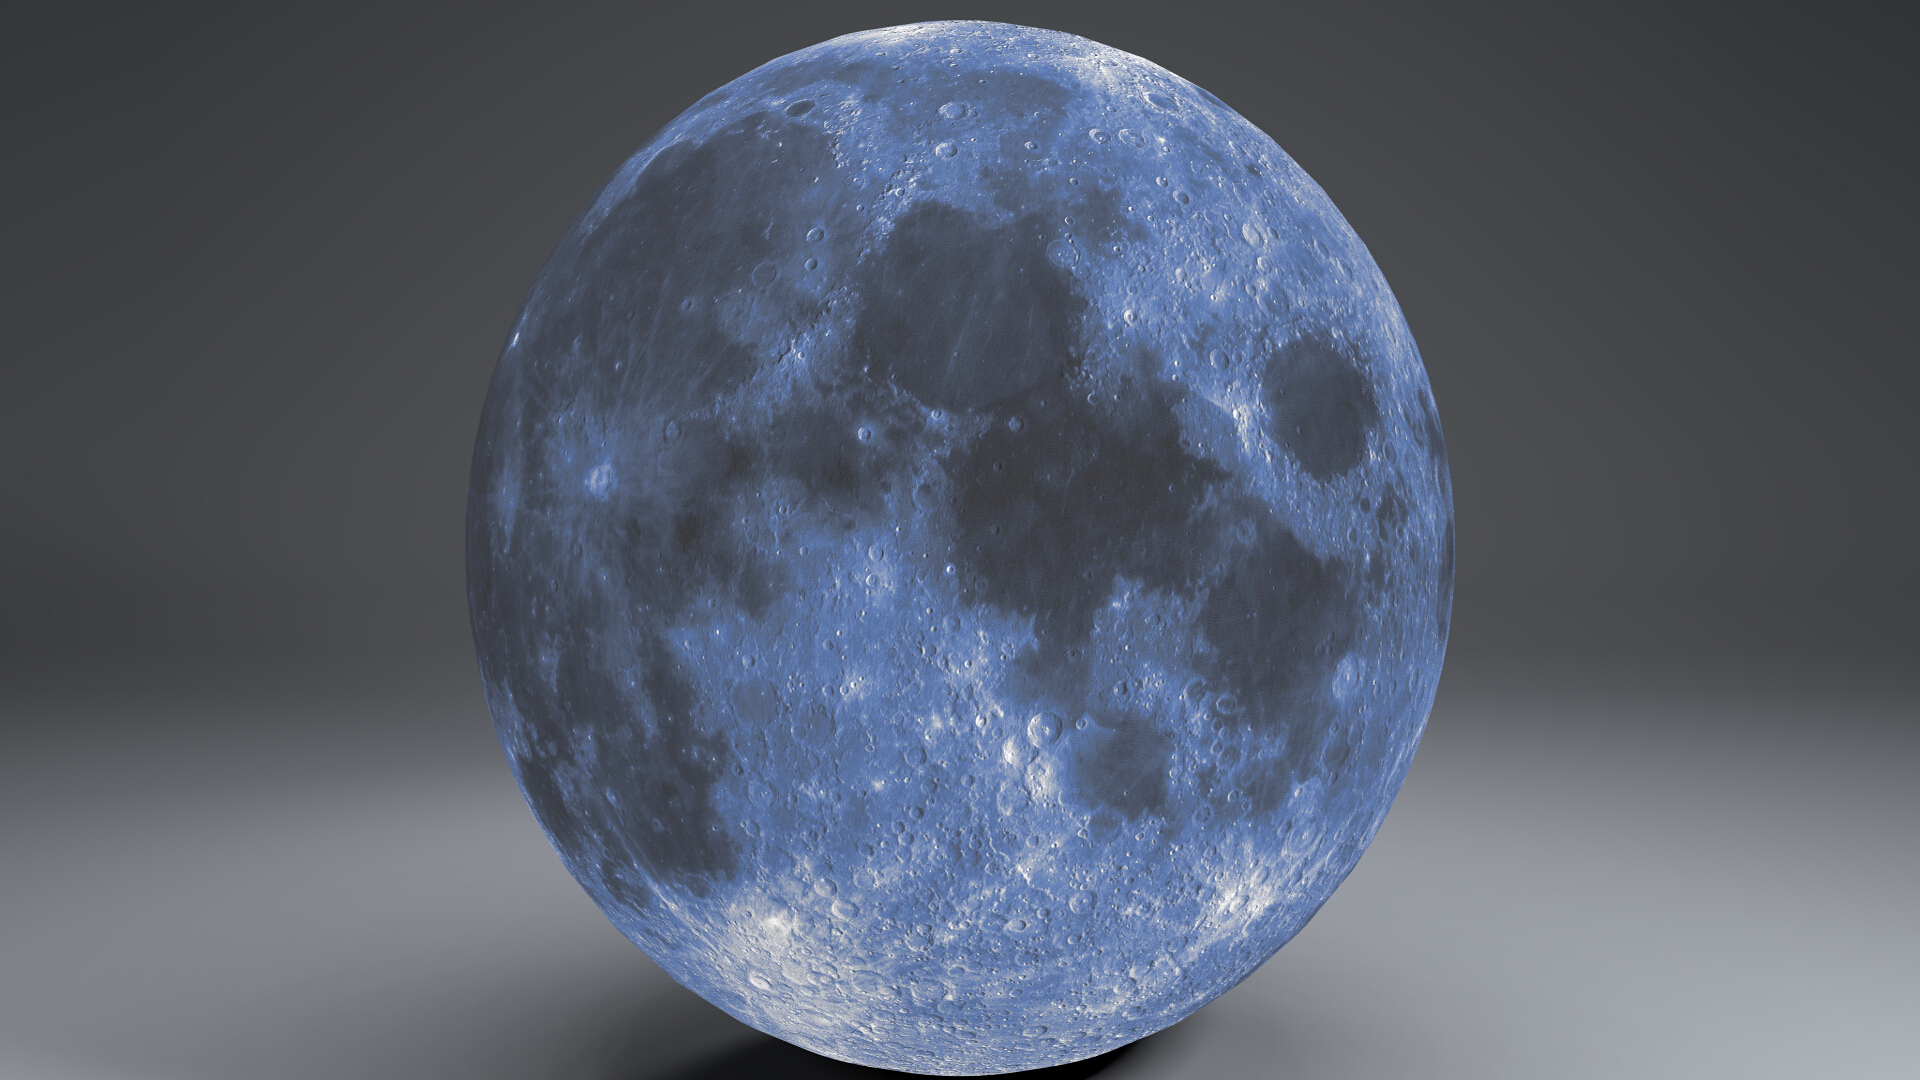 blue moonglobe 11k 3d model 3ds fbx blend dae obj 221887